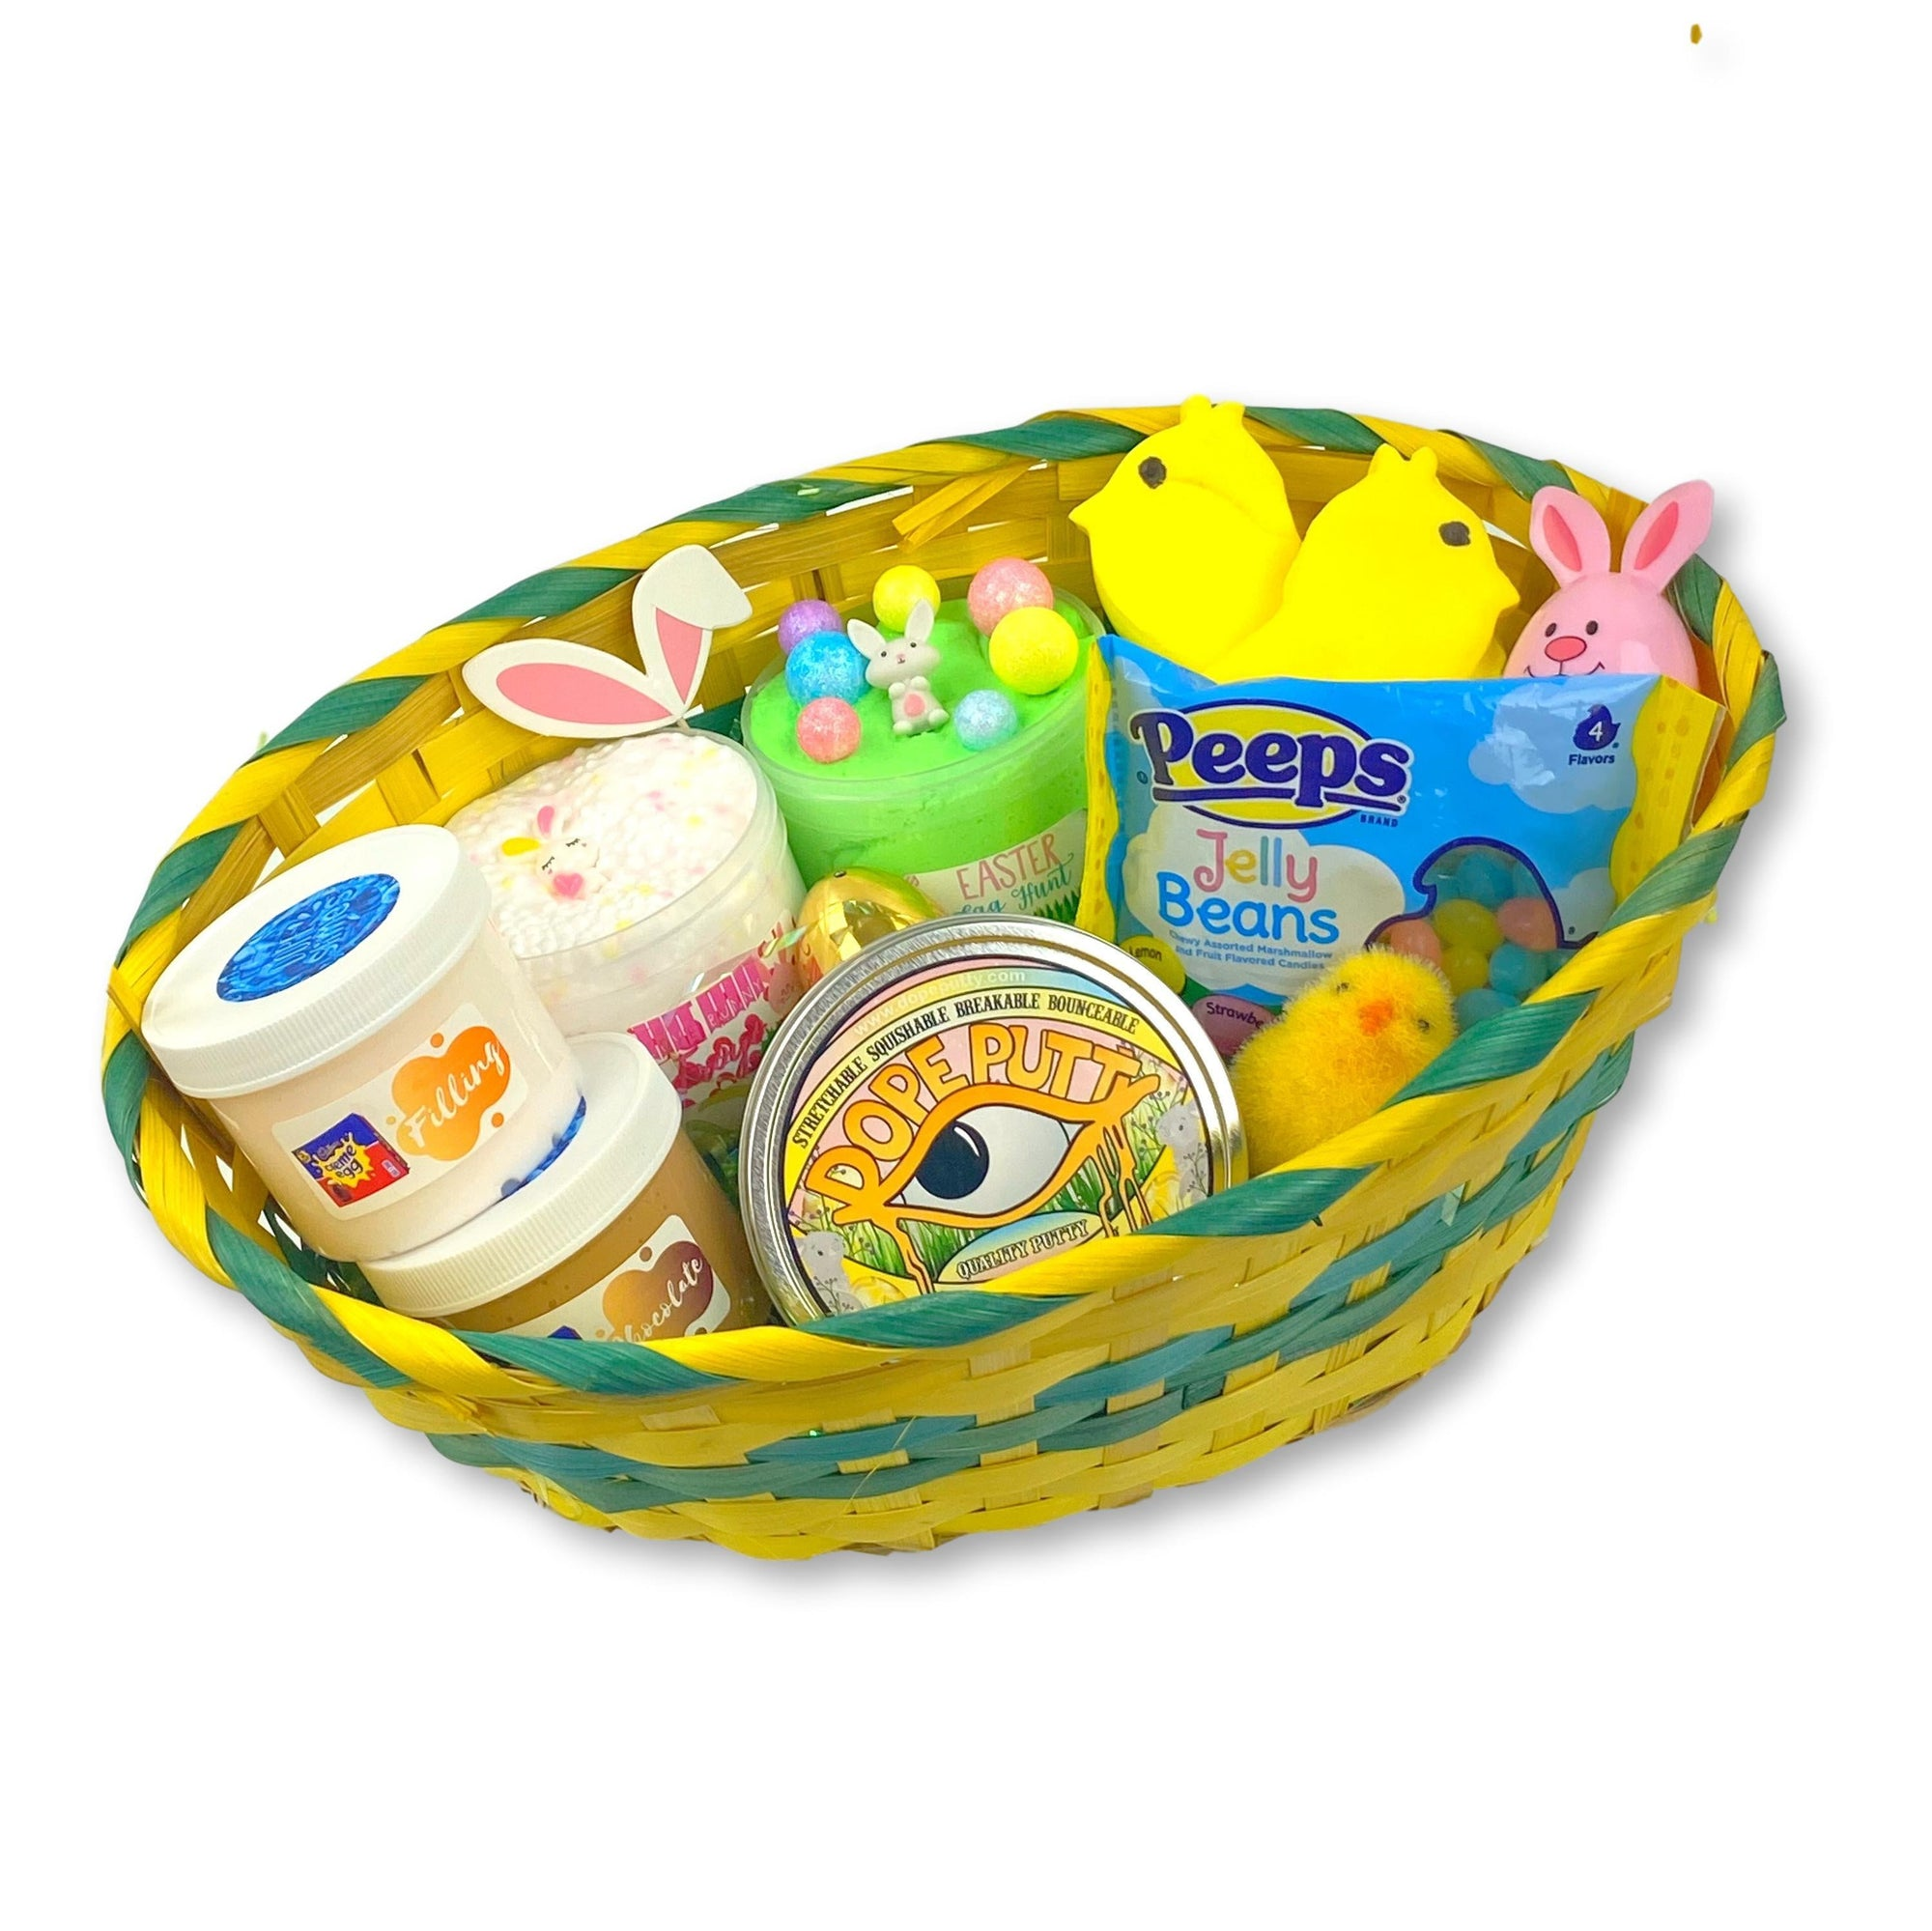 Easter Slime Basket Gift Set - Shop Slime - Dope Slimes